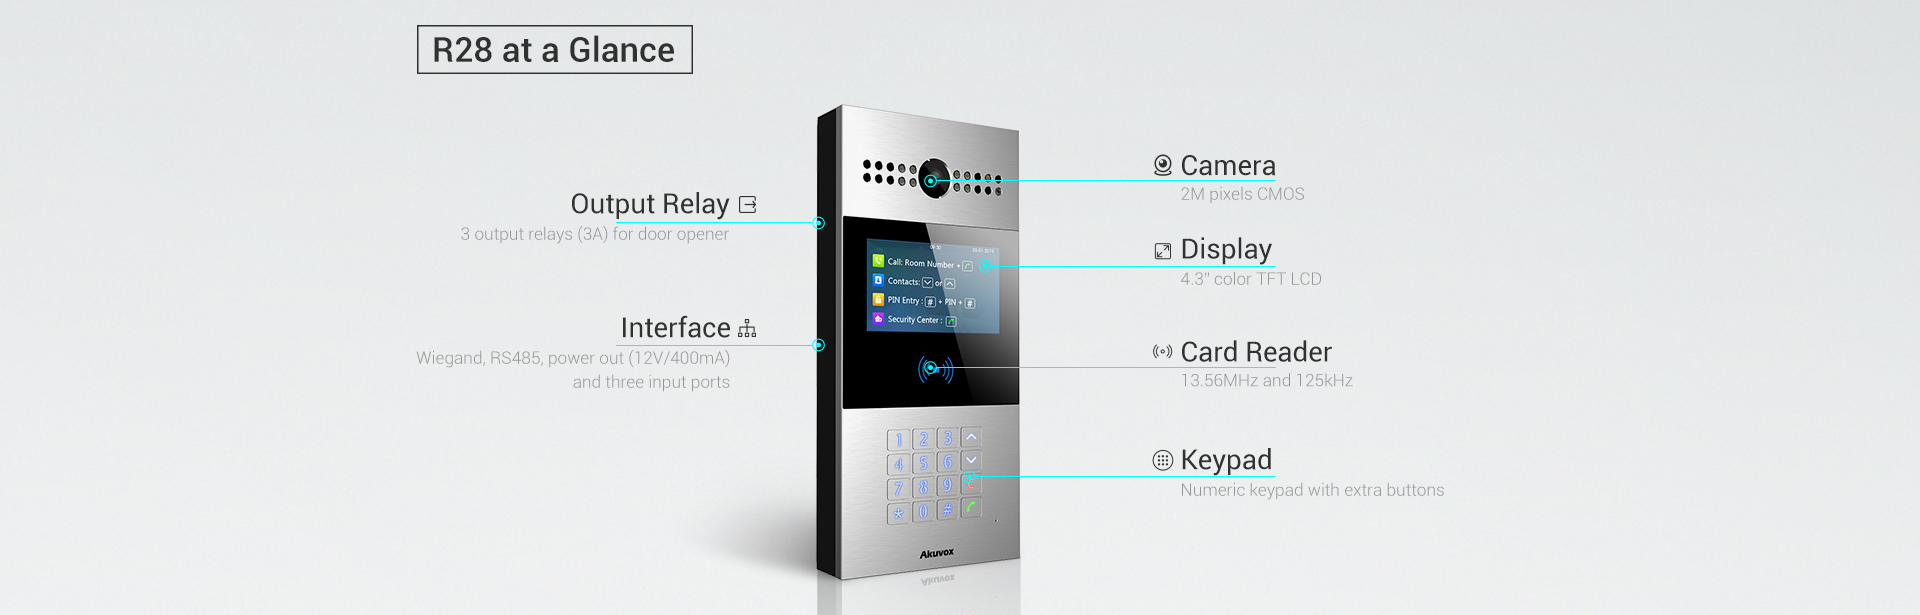 R28 SIP video doorphone with a numeric keypad